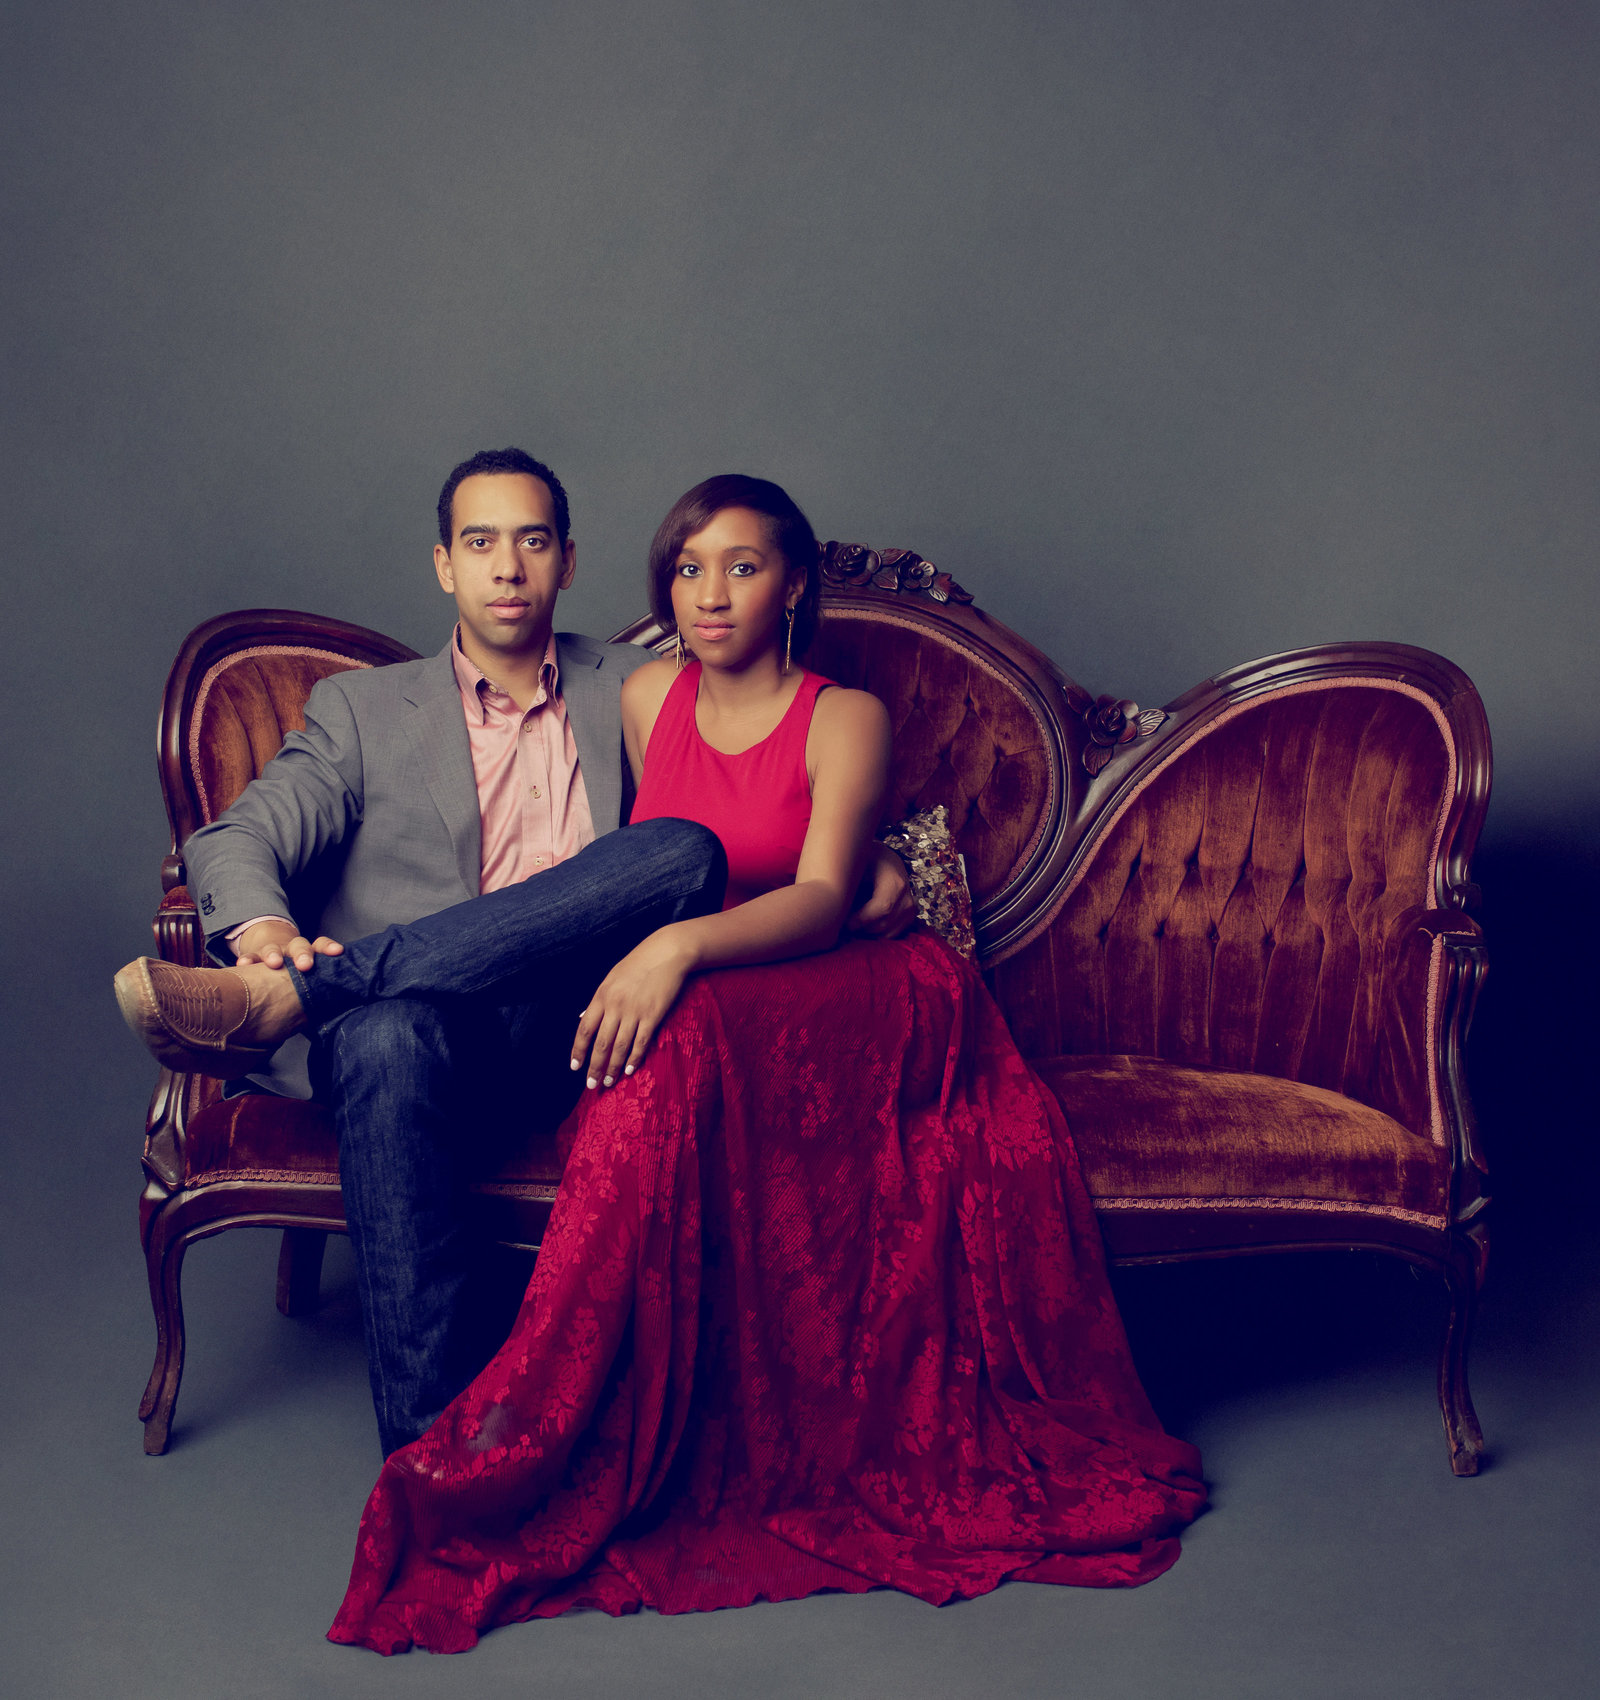 High end portrait of man in jeans and a blazer and woman in a red dress, sitting on an antique sofa. Family portraits Houston.